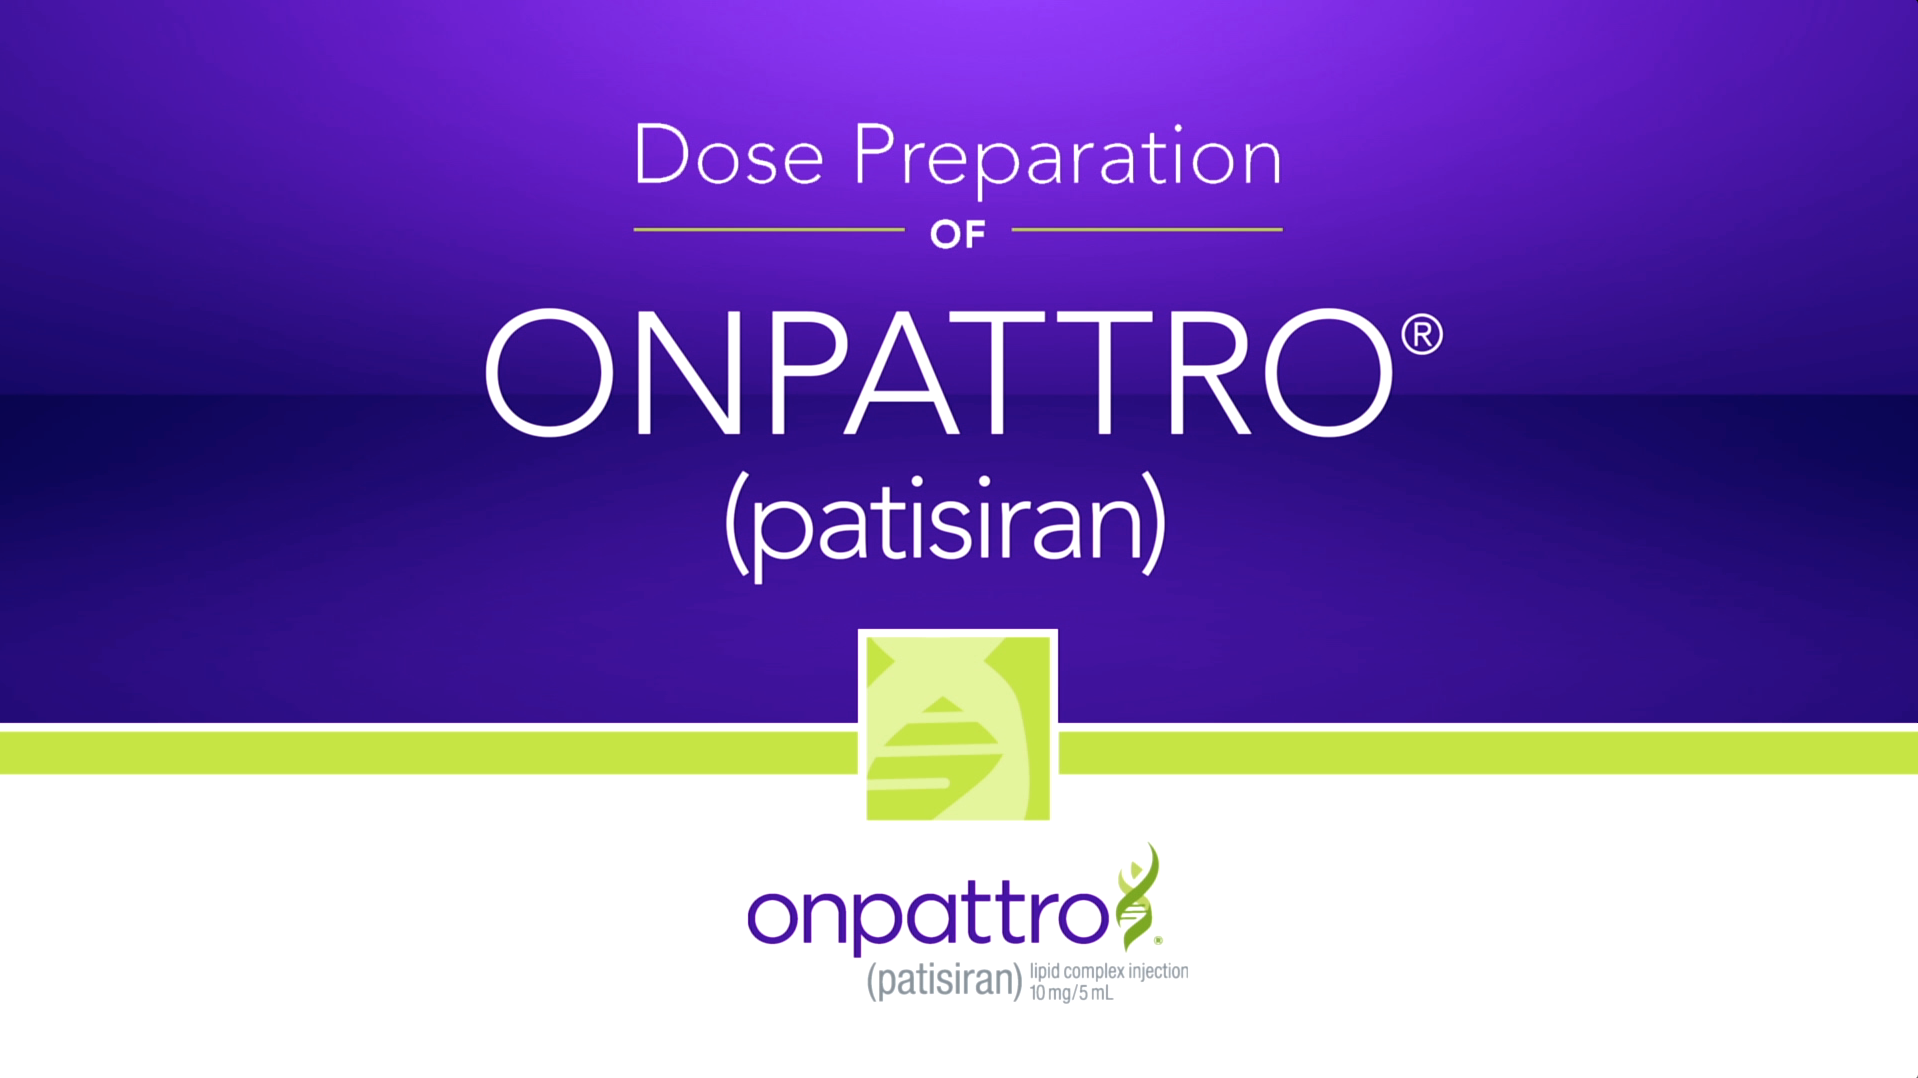 Preparation instructions for ONPATTRO® (patisiran)